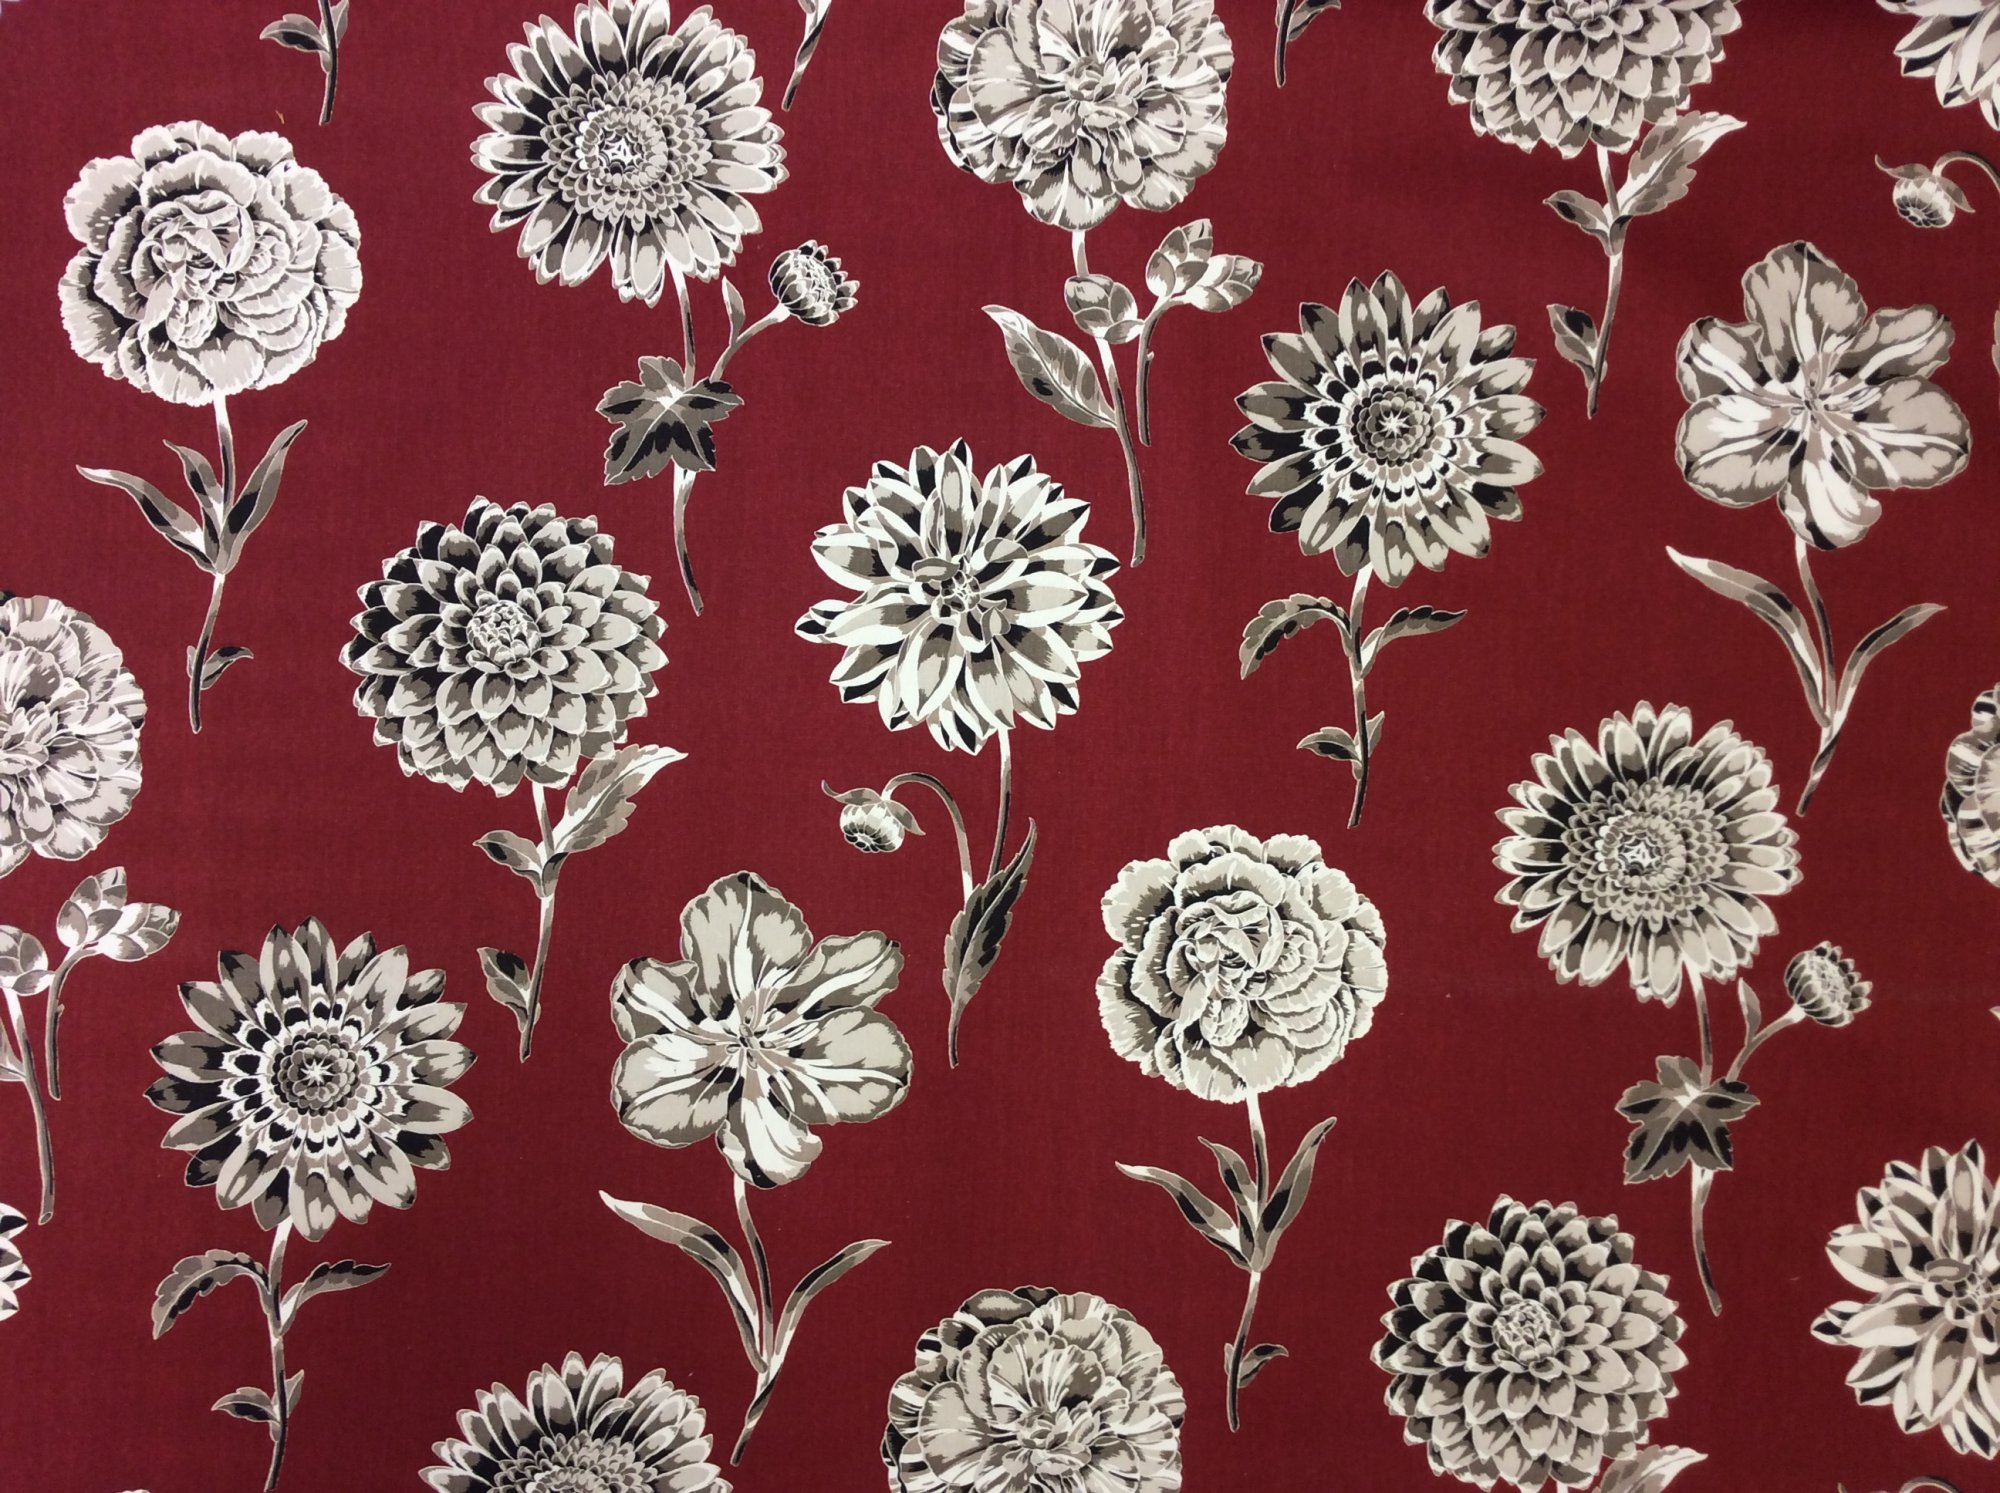 Outstanding Contemporary Floral Print Peony and Dahlia Large Scale Heavy Weight Cotton Fabric HD717